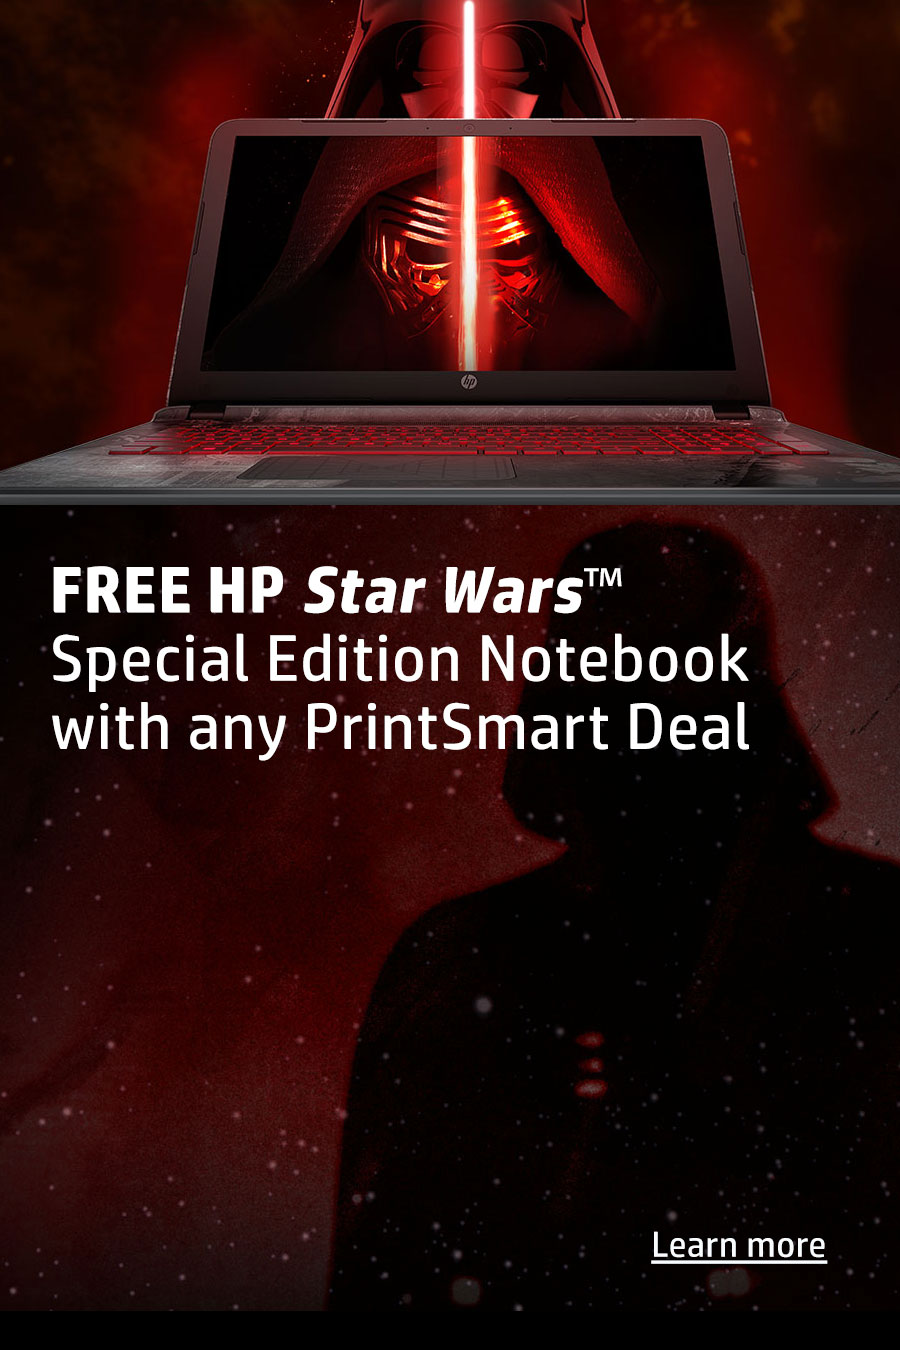 Free HP Star Wars Notebook with Printsmart Deal